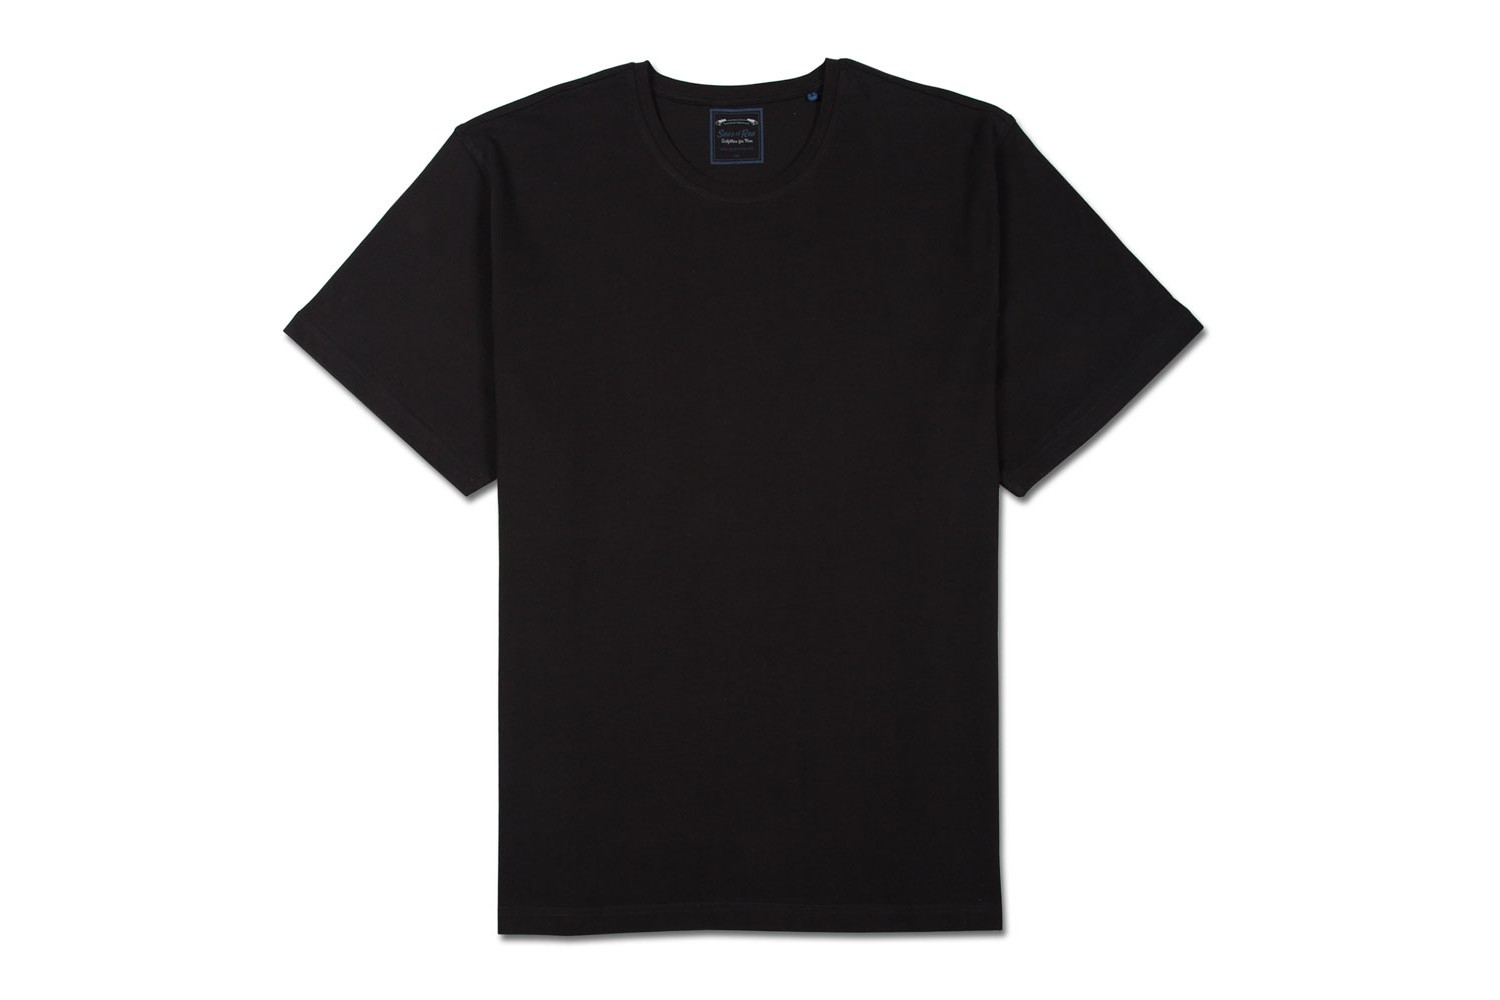 Mockup Polo Nera Plain Black T Shirt 32 Free Hd Wallpaper